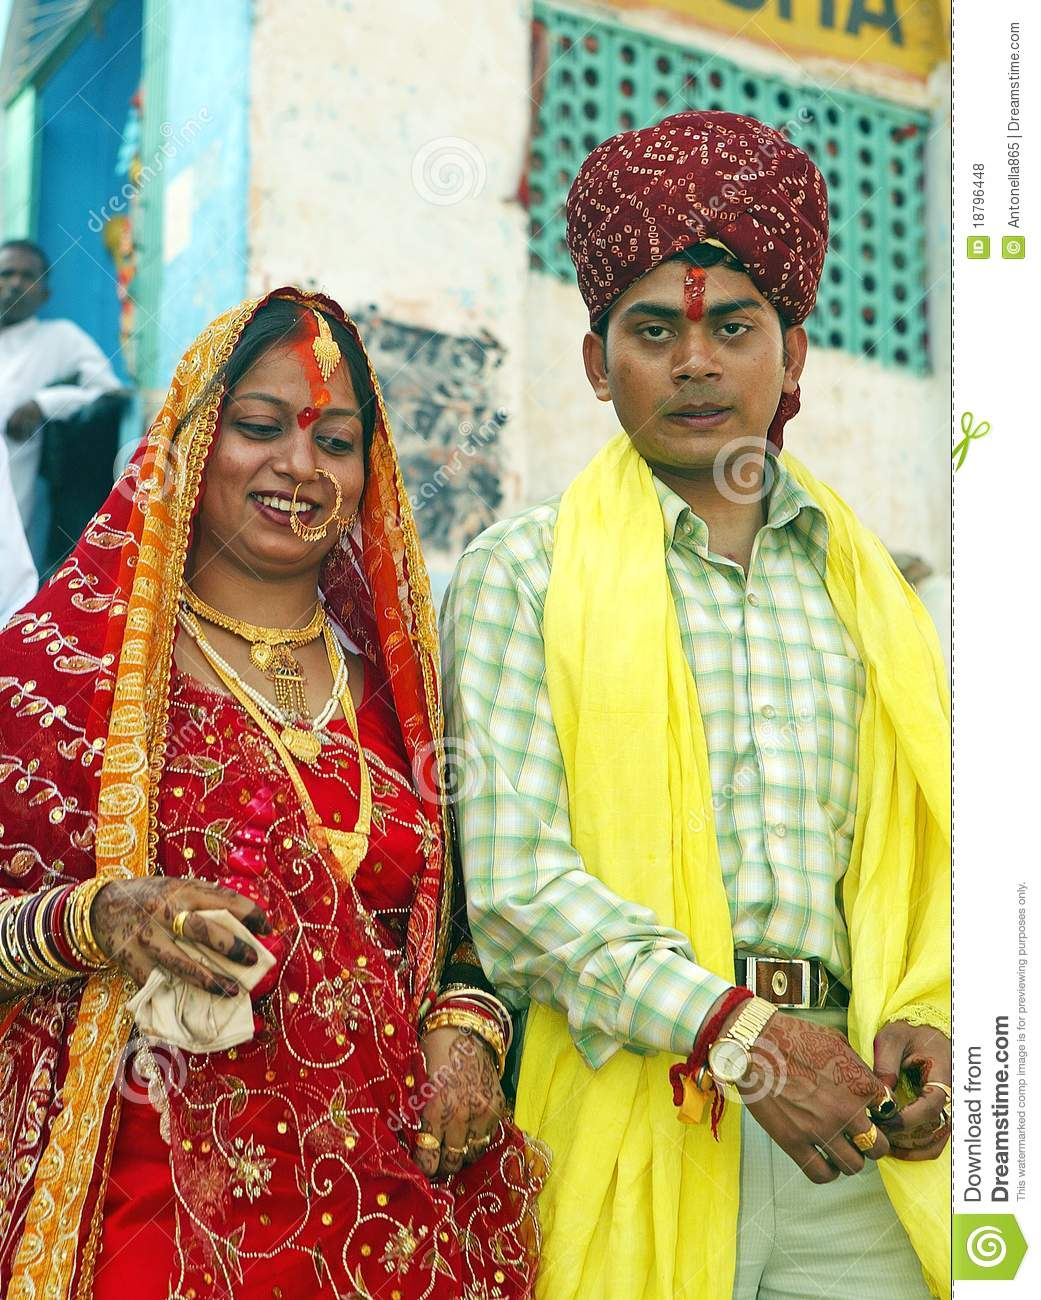 Hindu bride and husband editorial stock photo Image of marriage  18796448